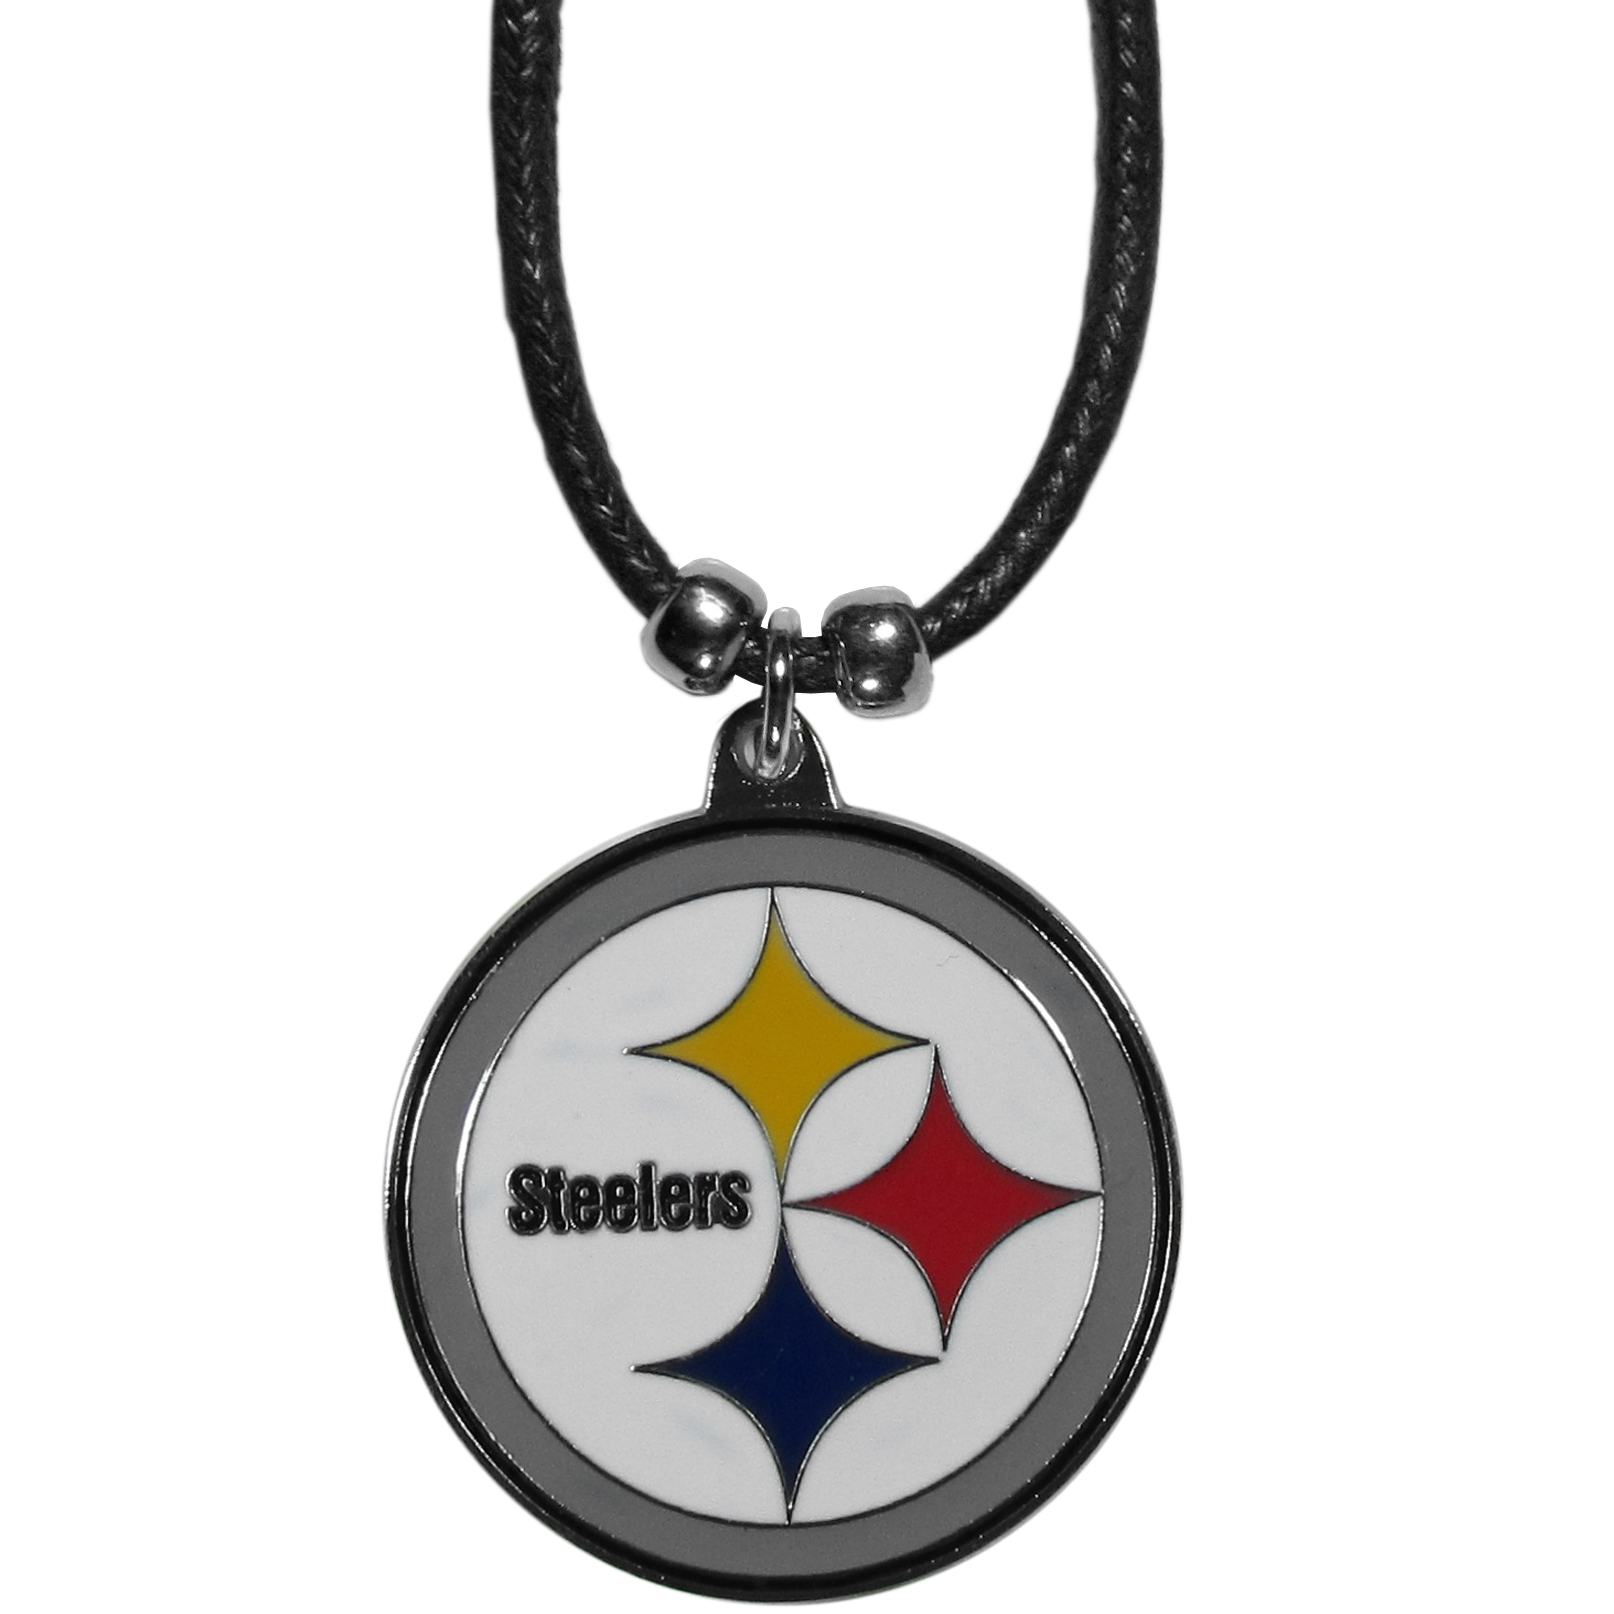 Pittsburgh Steelers Cord Necklace - This classic style cotton cord necklace features an extra large Pittsburgh Steelers pendant on a 21 inch cord.